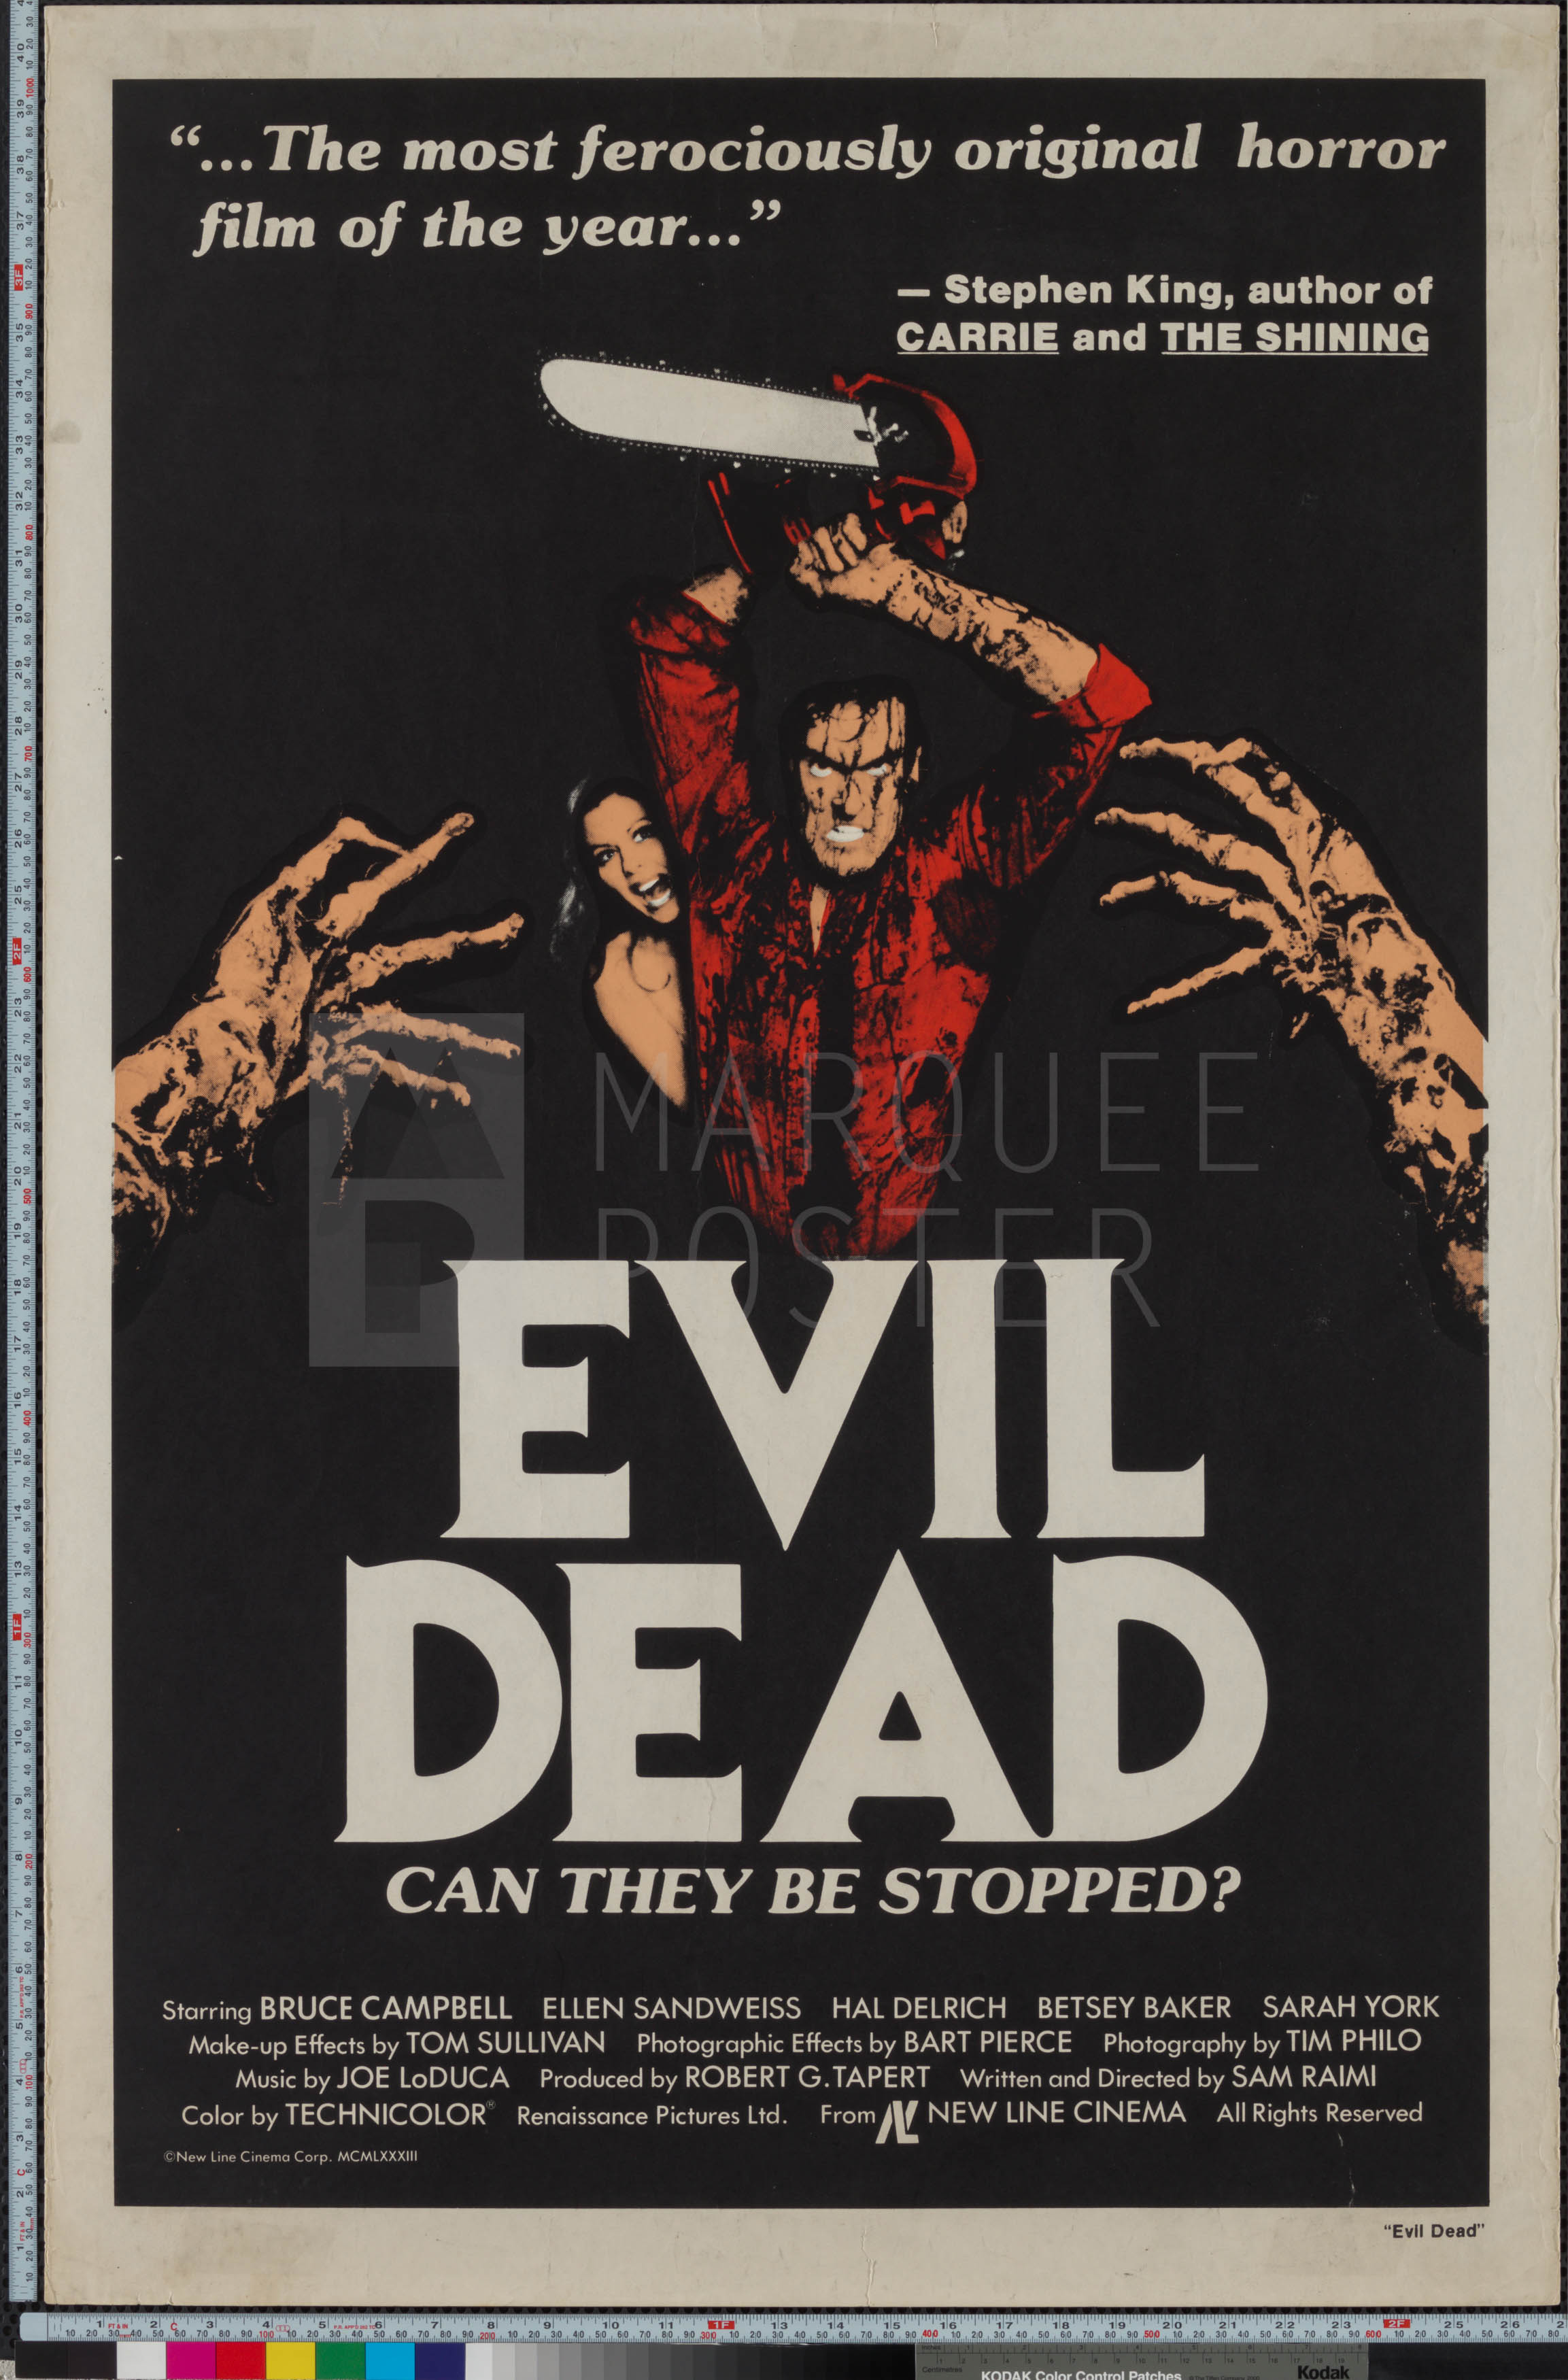 14-evil-dead-film-festival-screenprint-us-1-sheet-1981-02